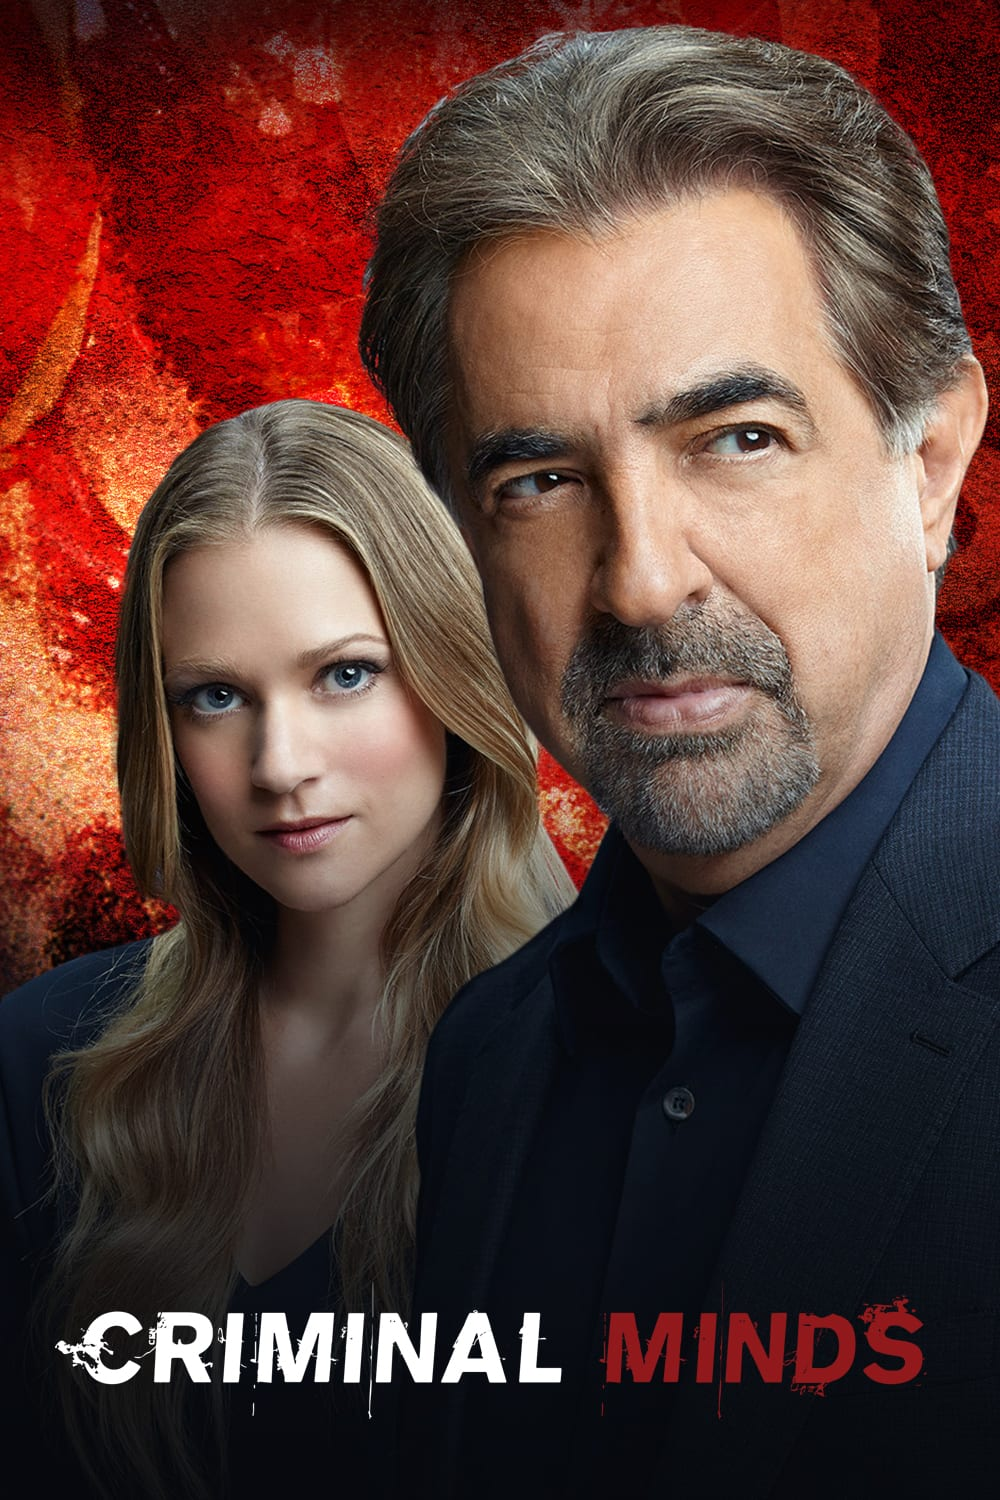 criminal minds viaplay